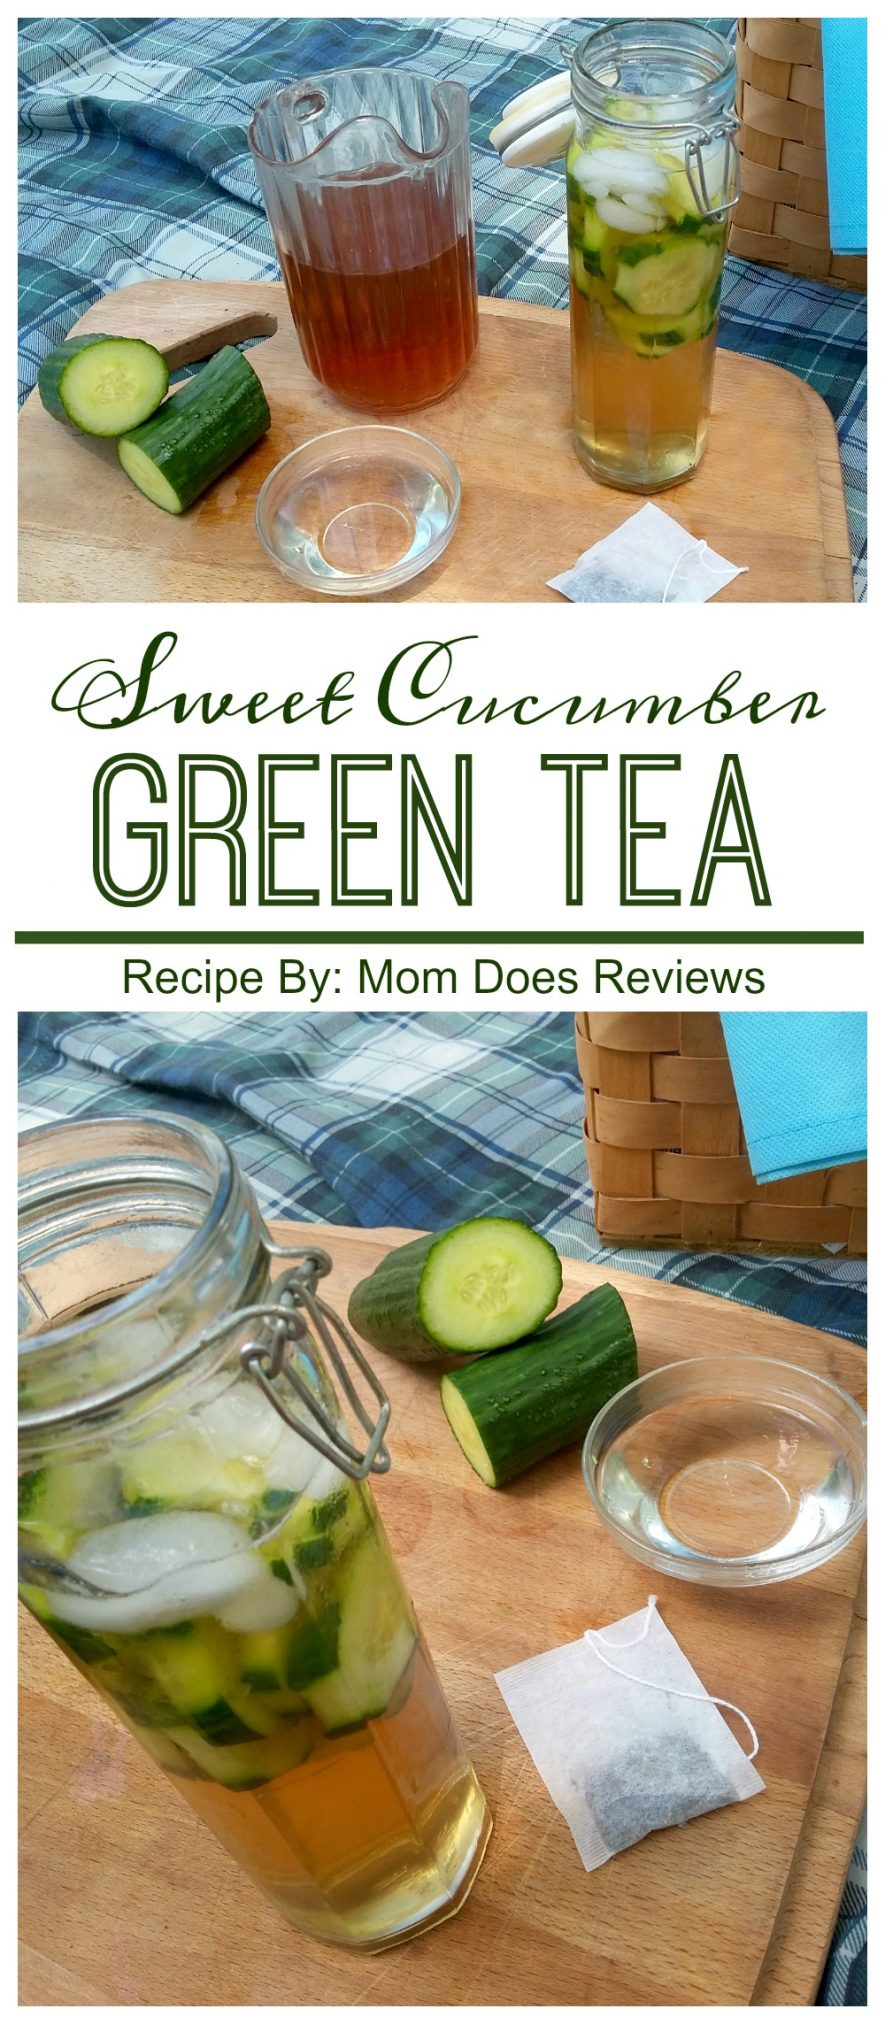 Cucumber Green Tea